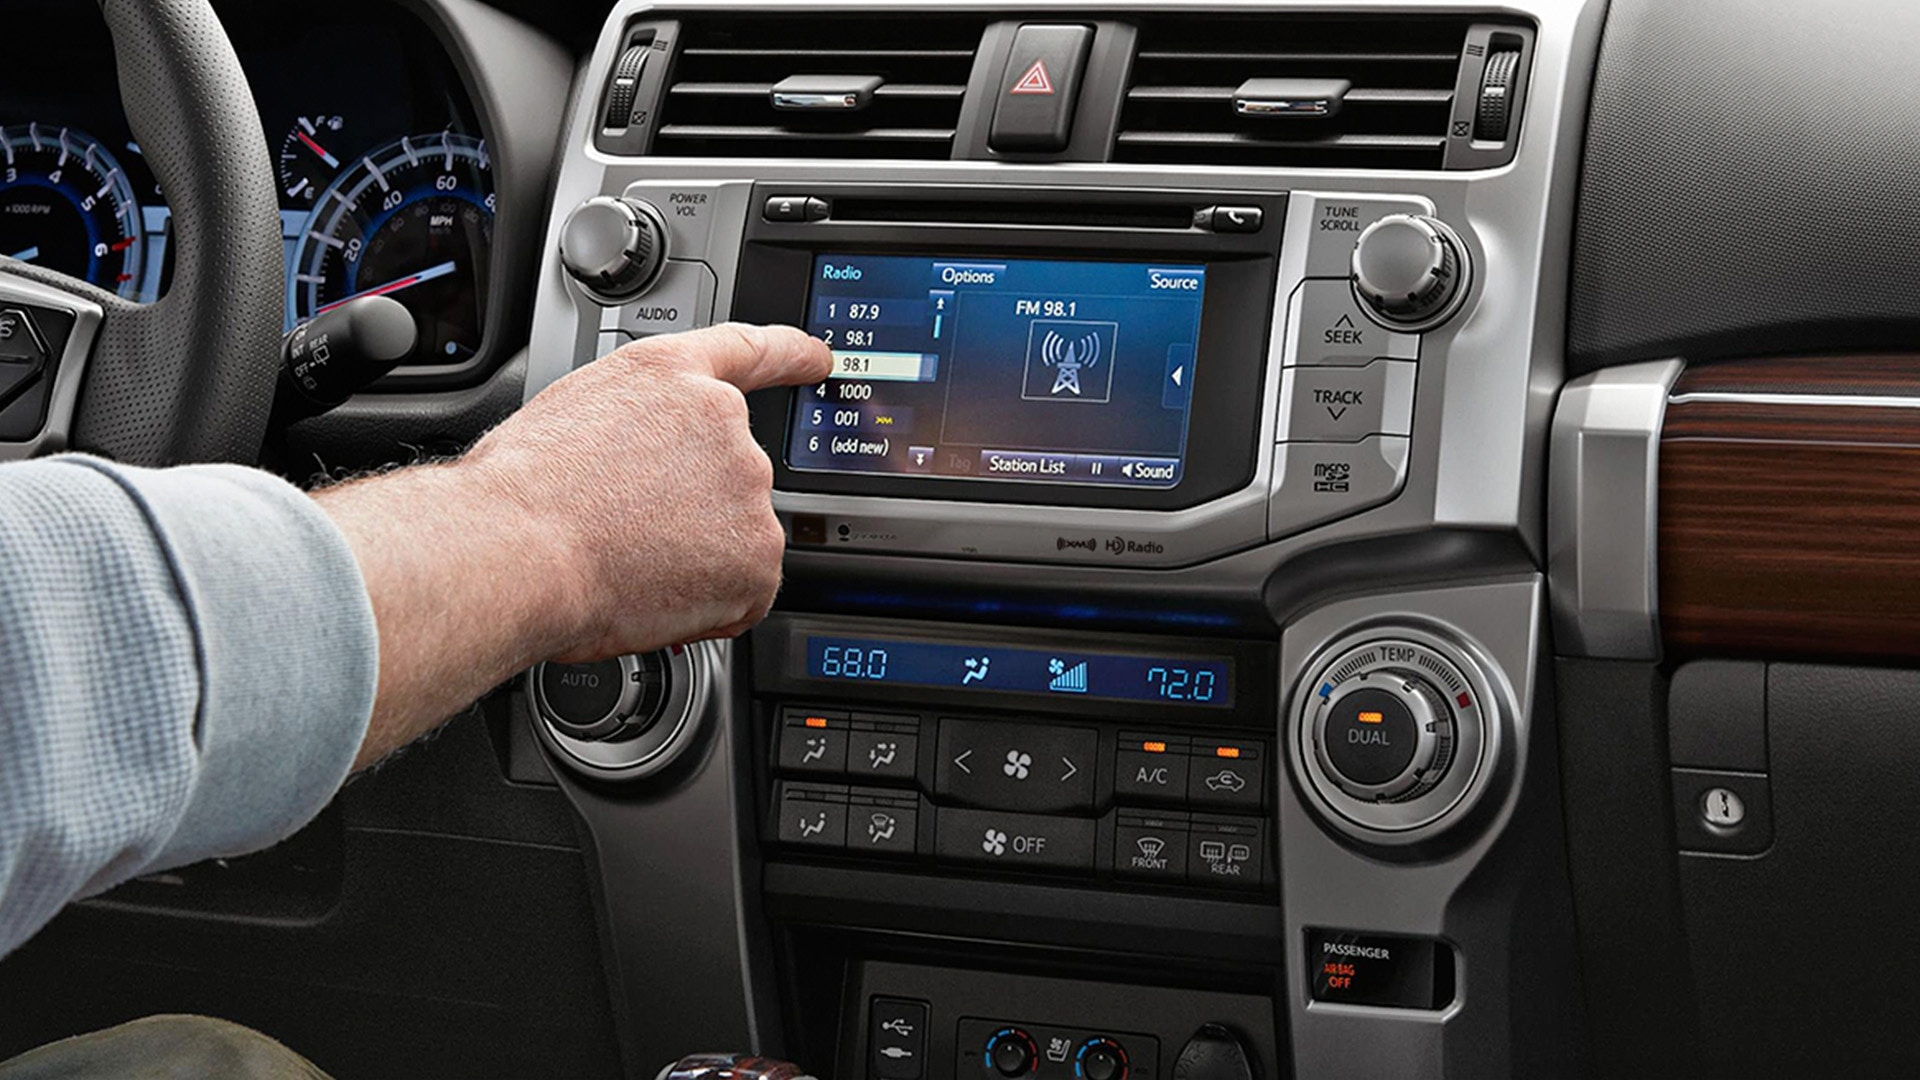 2019 Toyota 4Runner Infotainment Center